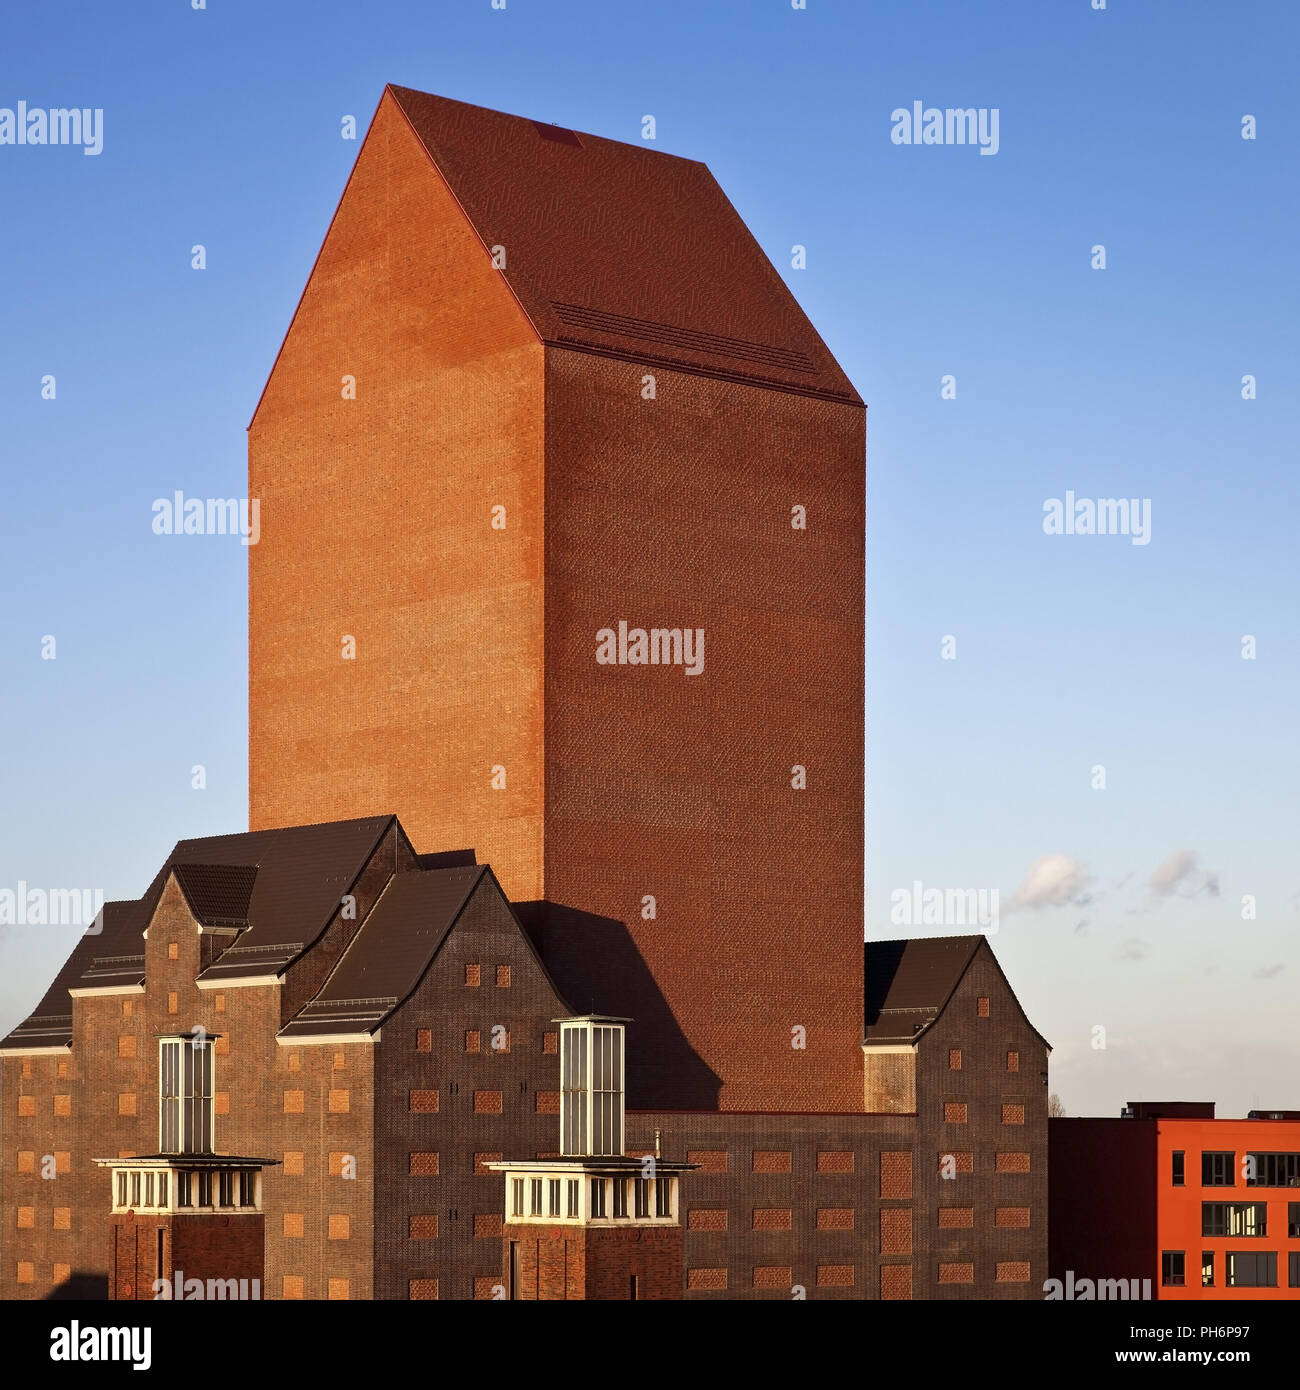 NRW Archiv in inner harbour, Duisburg, Germany - Stock Image